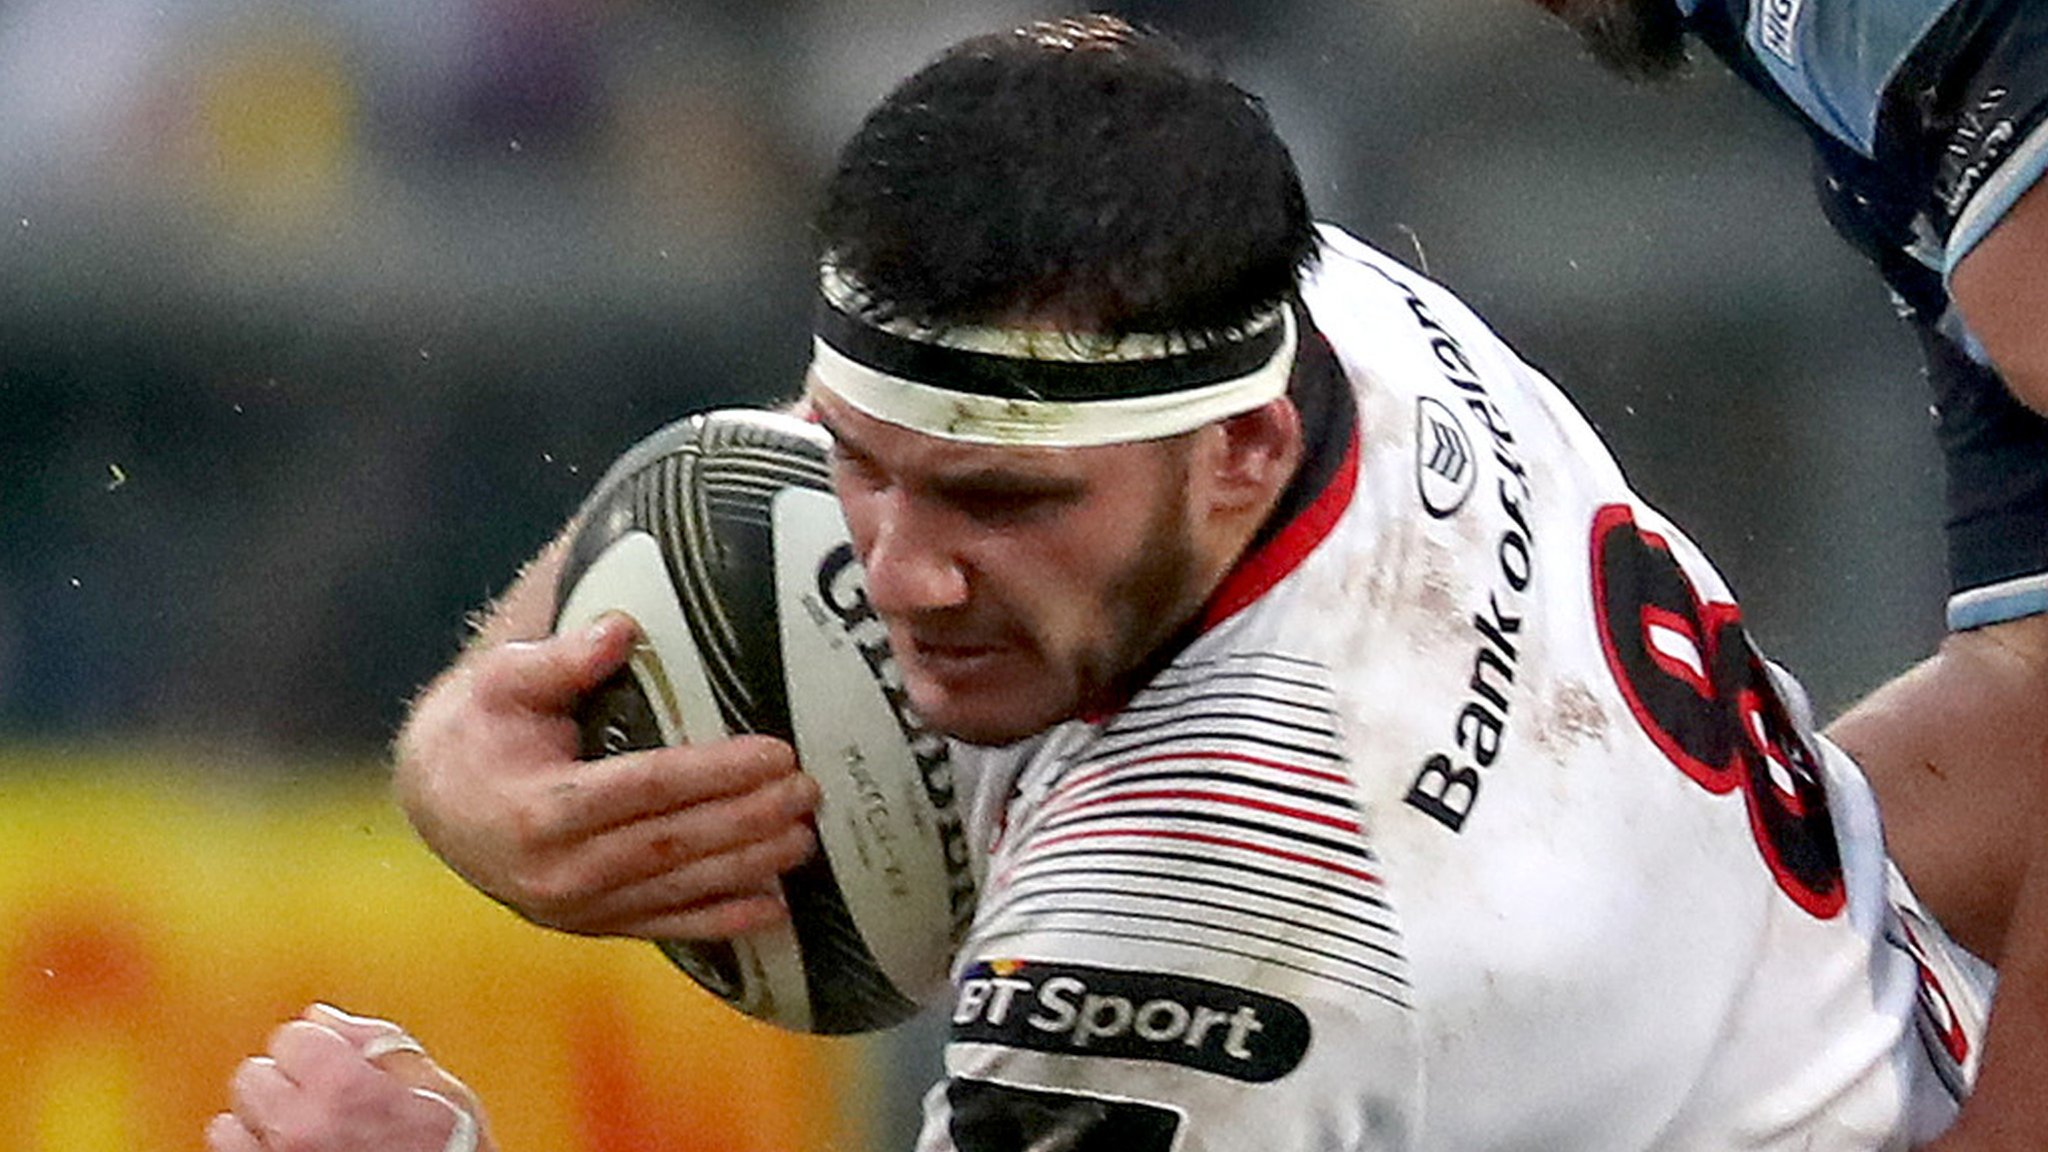 Pro14: Coetzee's return among five Ulster changes for Southern Kings game